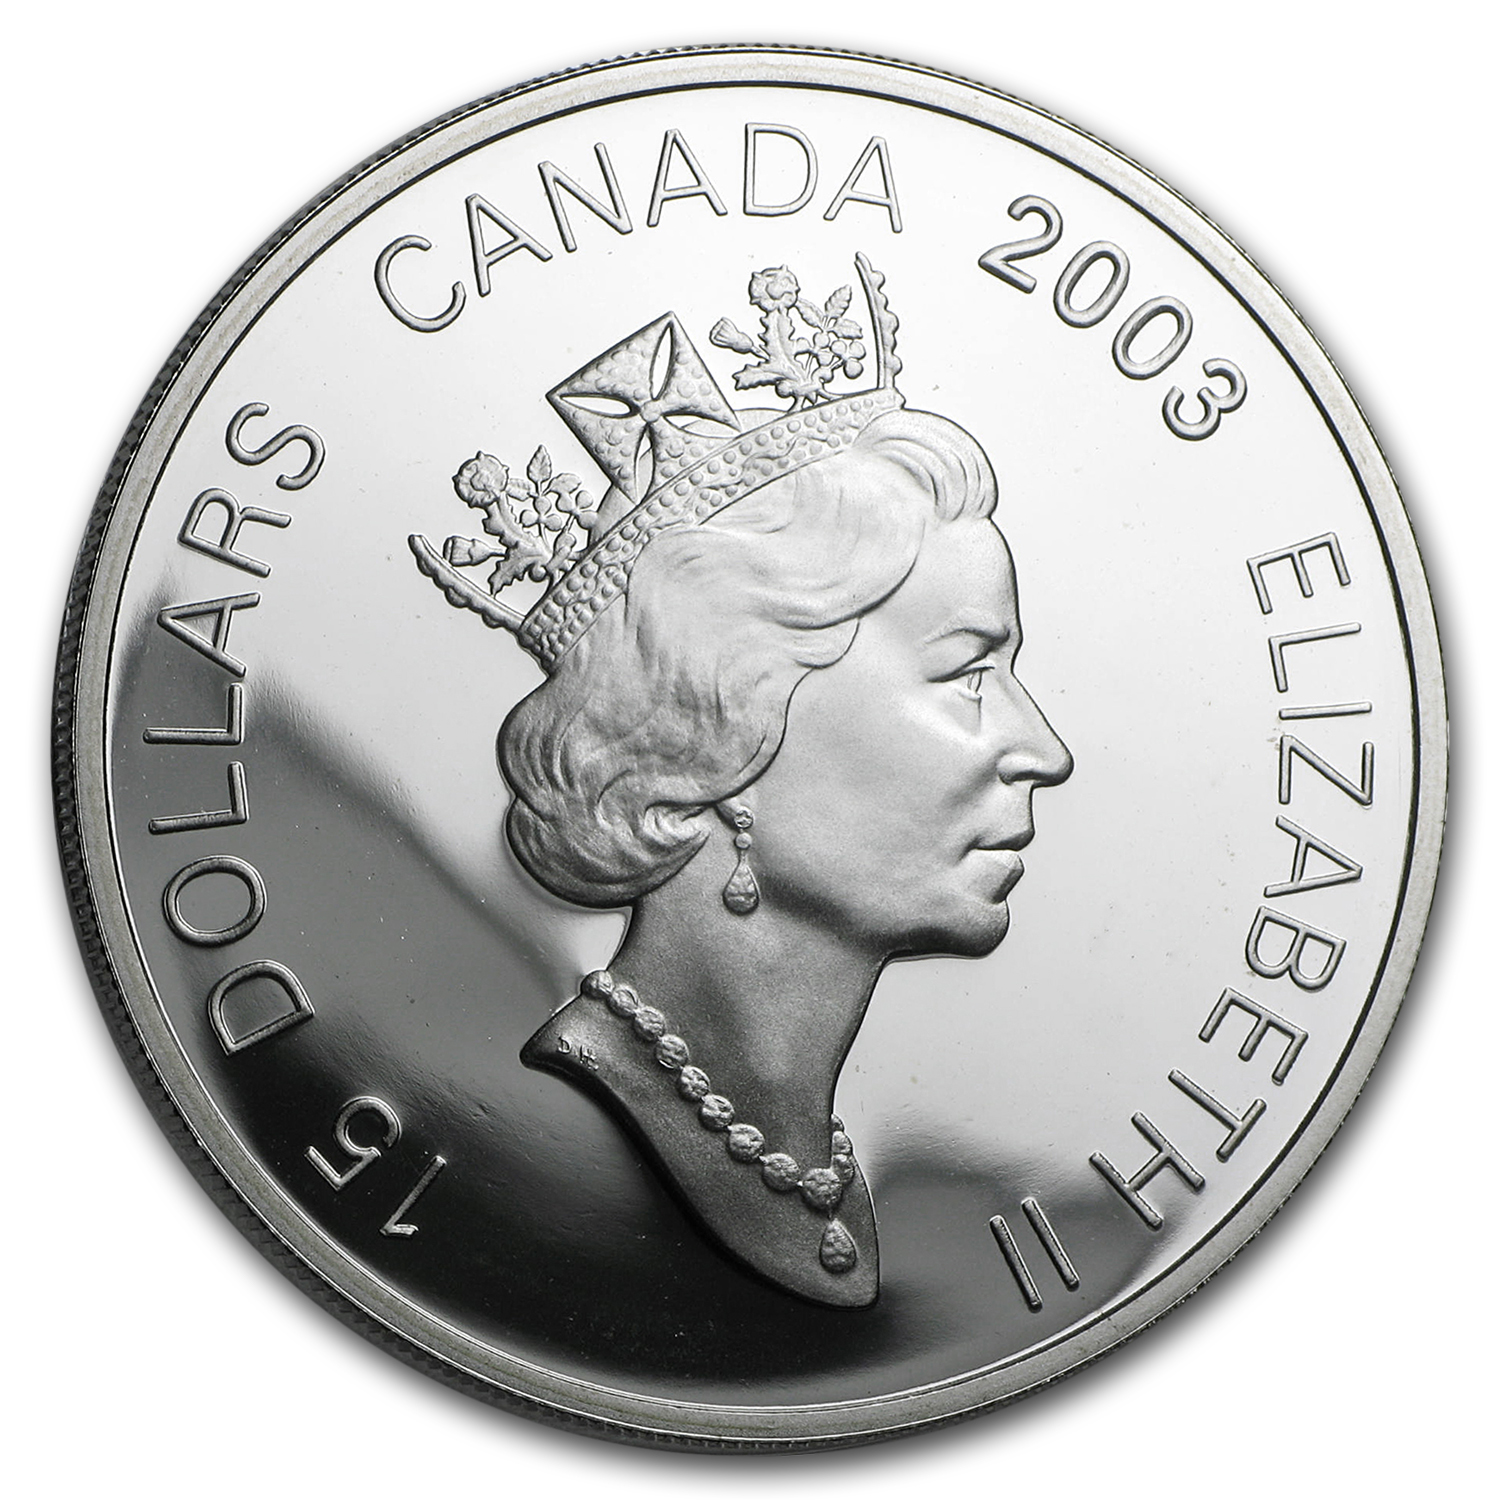 2003 Canada 1 oz Silver Year of the Sheep Proof